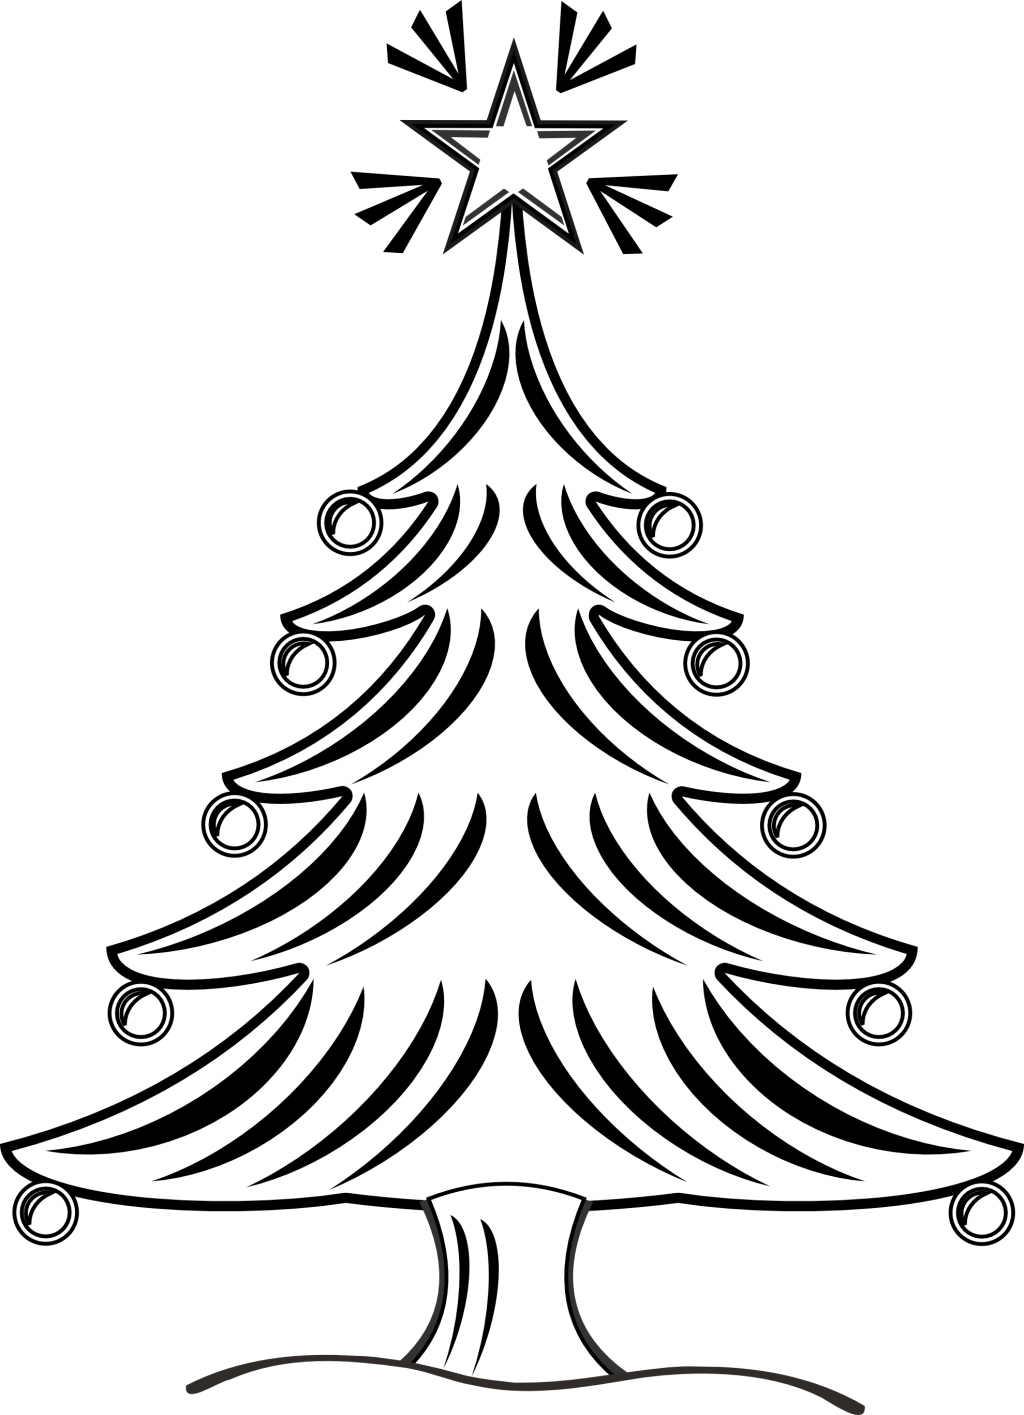 Christmas presents clipart black and white png transparent stock baby nursery ~ Excellent Black And White Christmas Tree Clipart ... png transparent stock